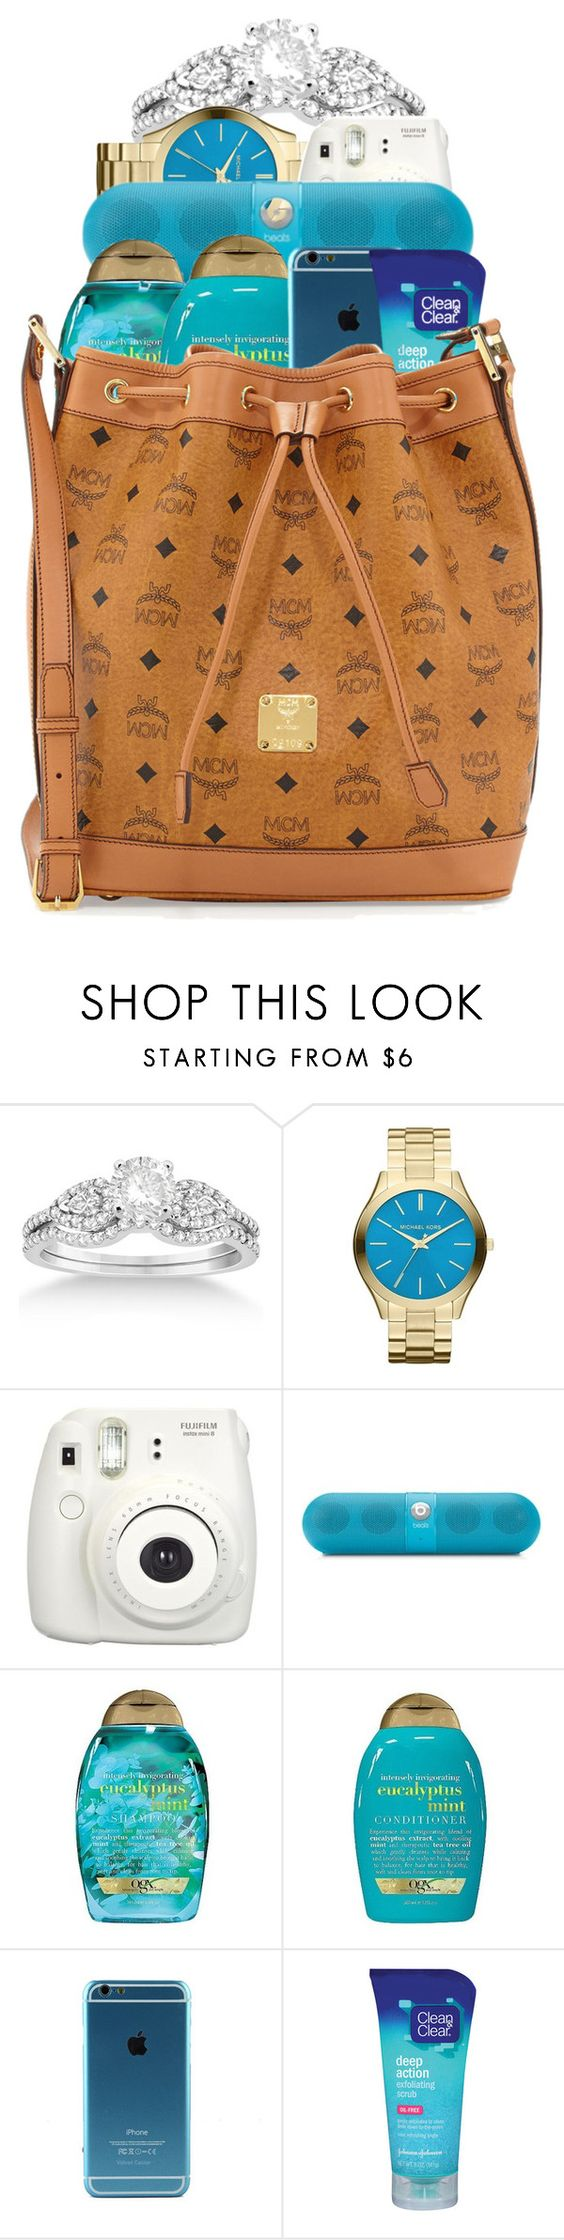 """""""Soon to be premade"""" by haraj-uku ❤ liked on Polyvore featuring Allurez, Michael Kors, Beats by Dr. Dre, Organix, Clean & Clear and MCM"""